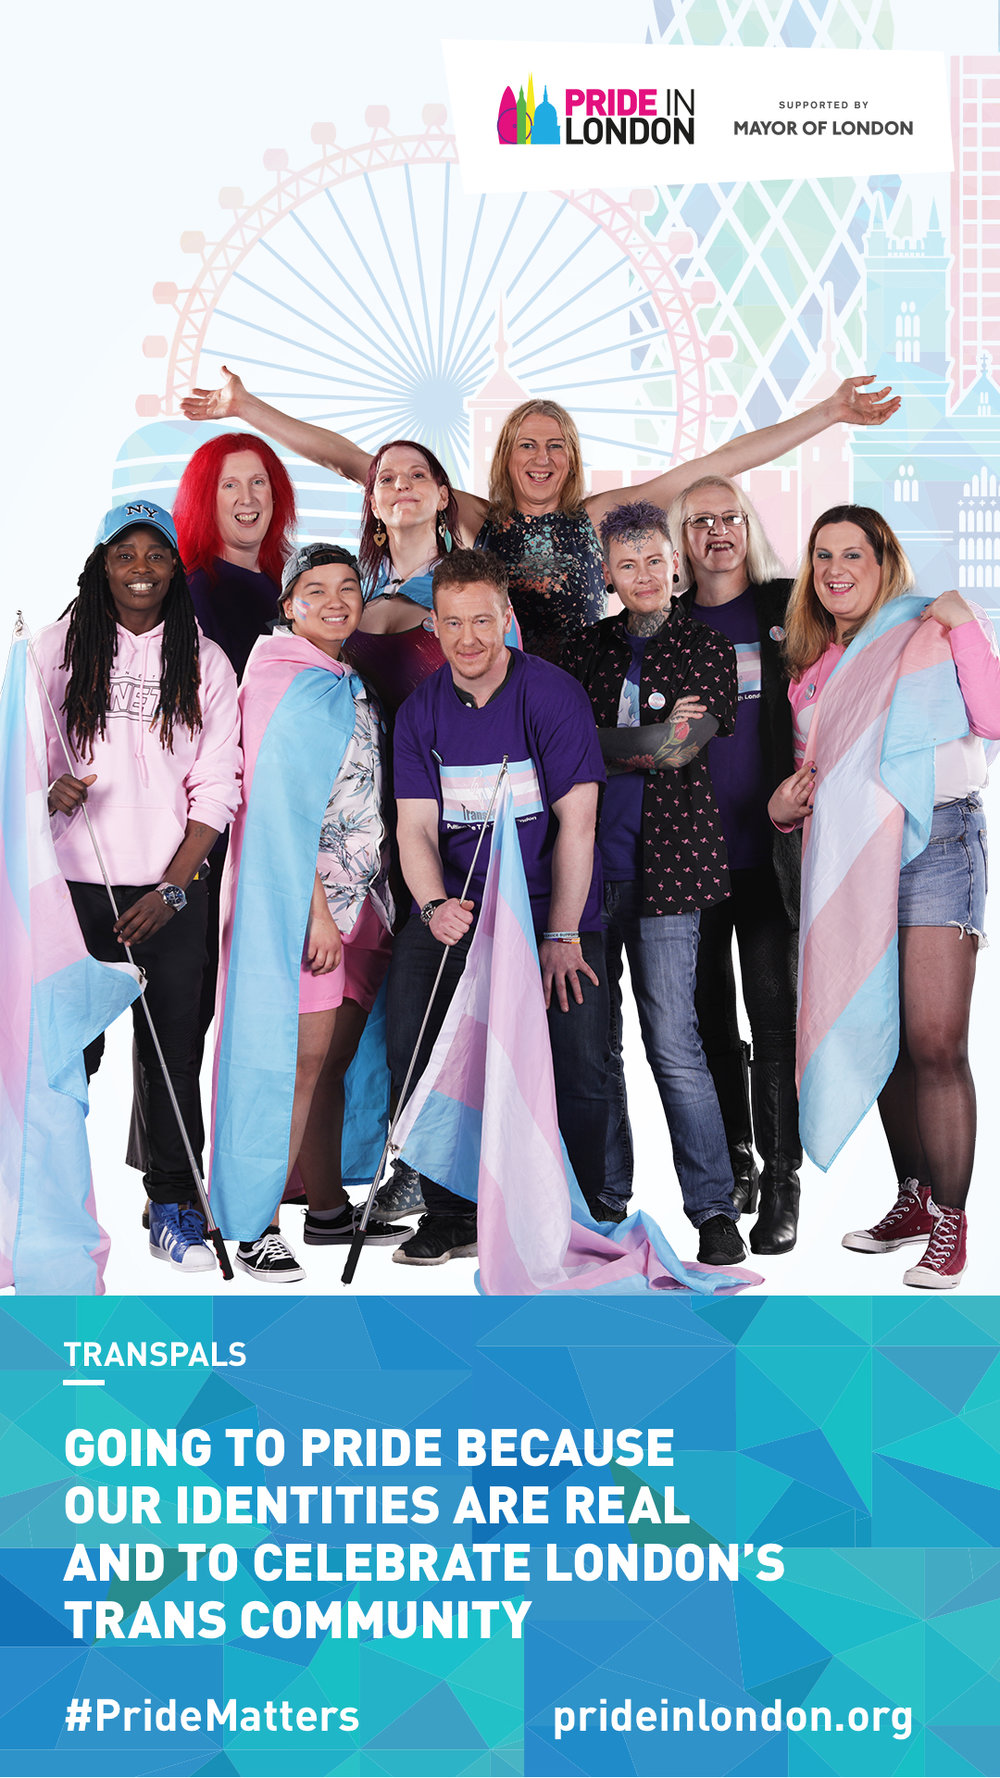 TransPALS showing why they will be taking part at Pride in London this year